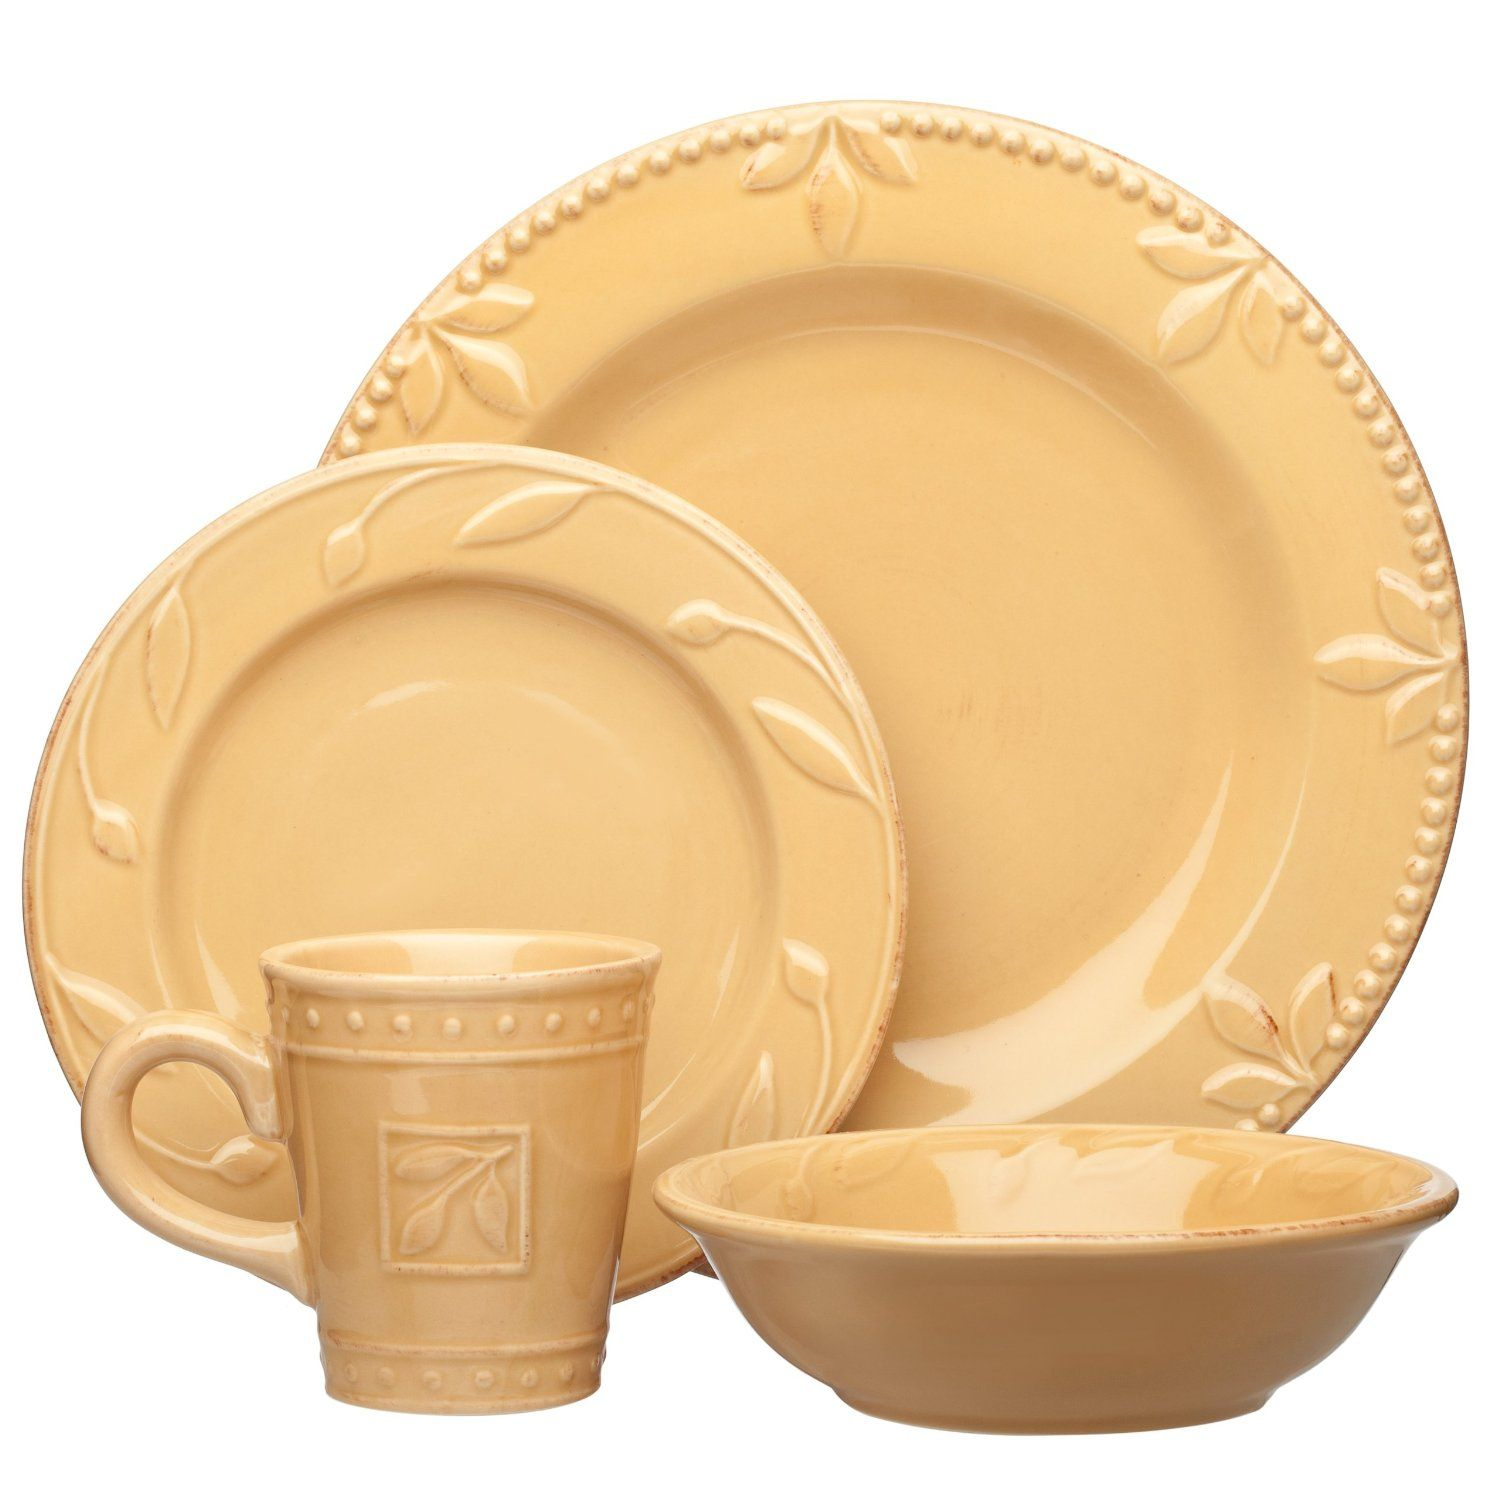 Amazon.com Signature Housewares Sorrento Collection Stoneware 4-Piece Dinnerware Set Gold  sc 1 st  Pinterest & Amazon.com: Signature Housewares Sorrento Collection Stoneware 4 ...